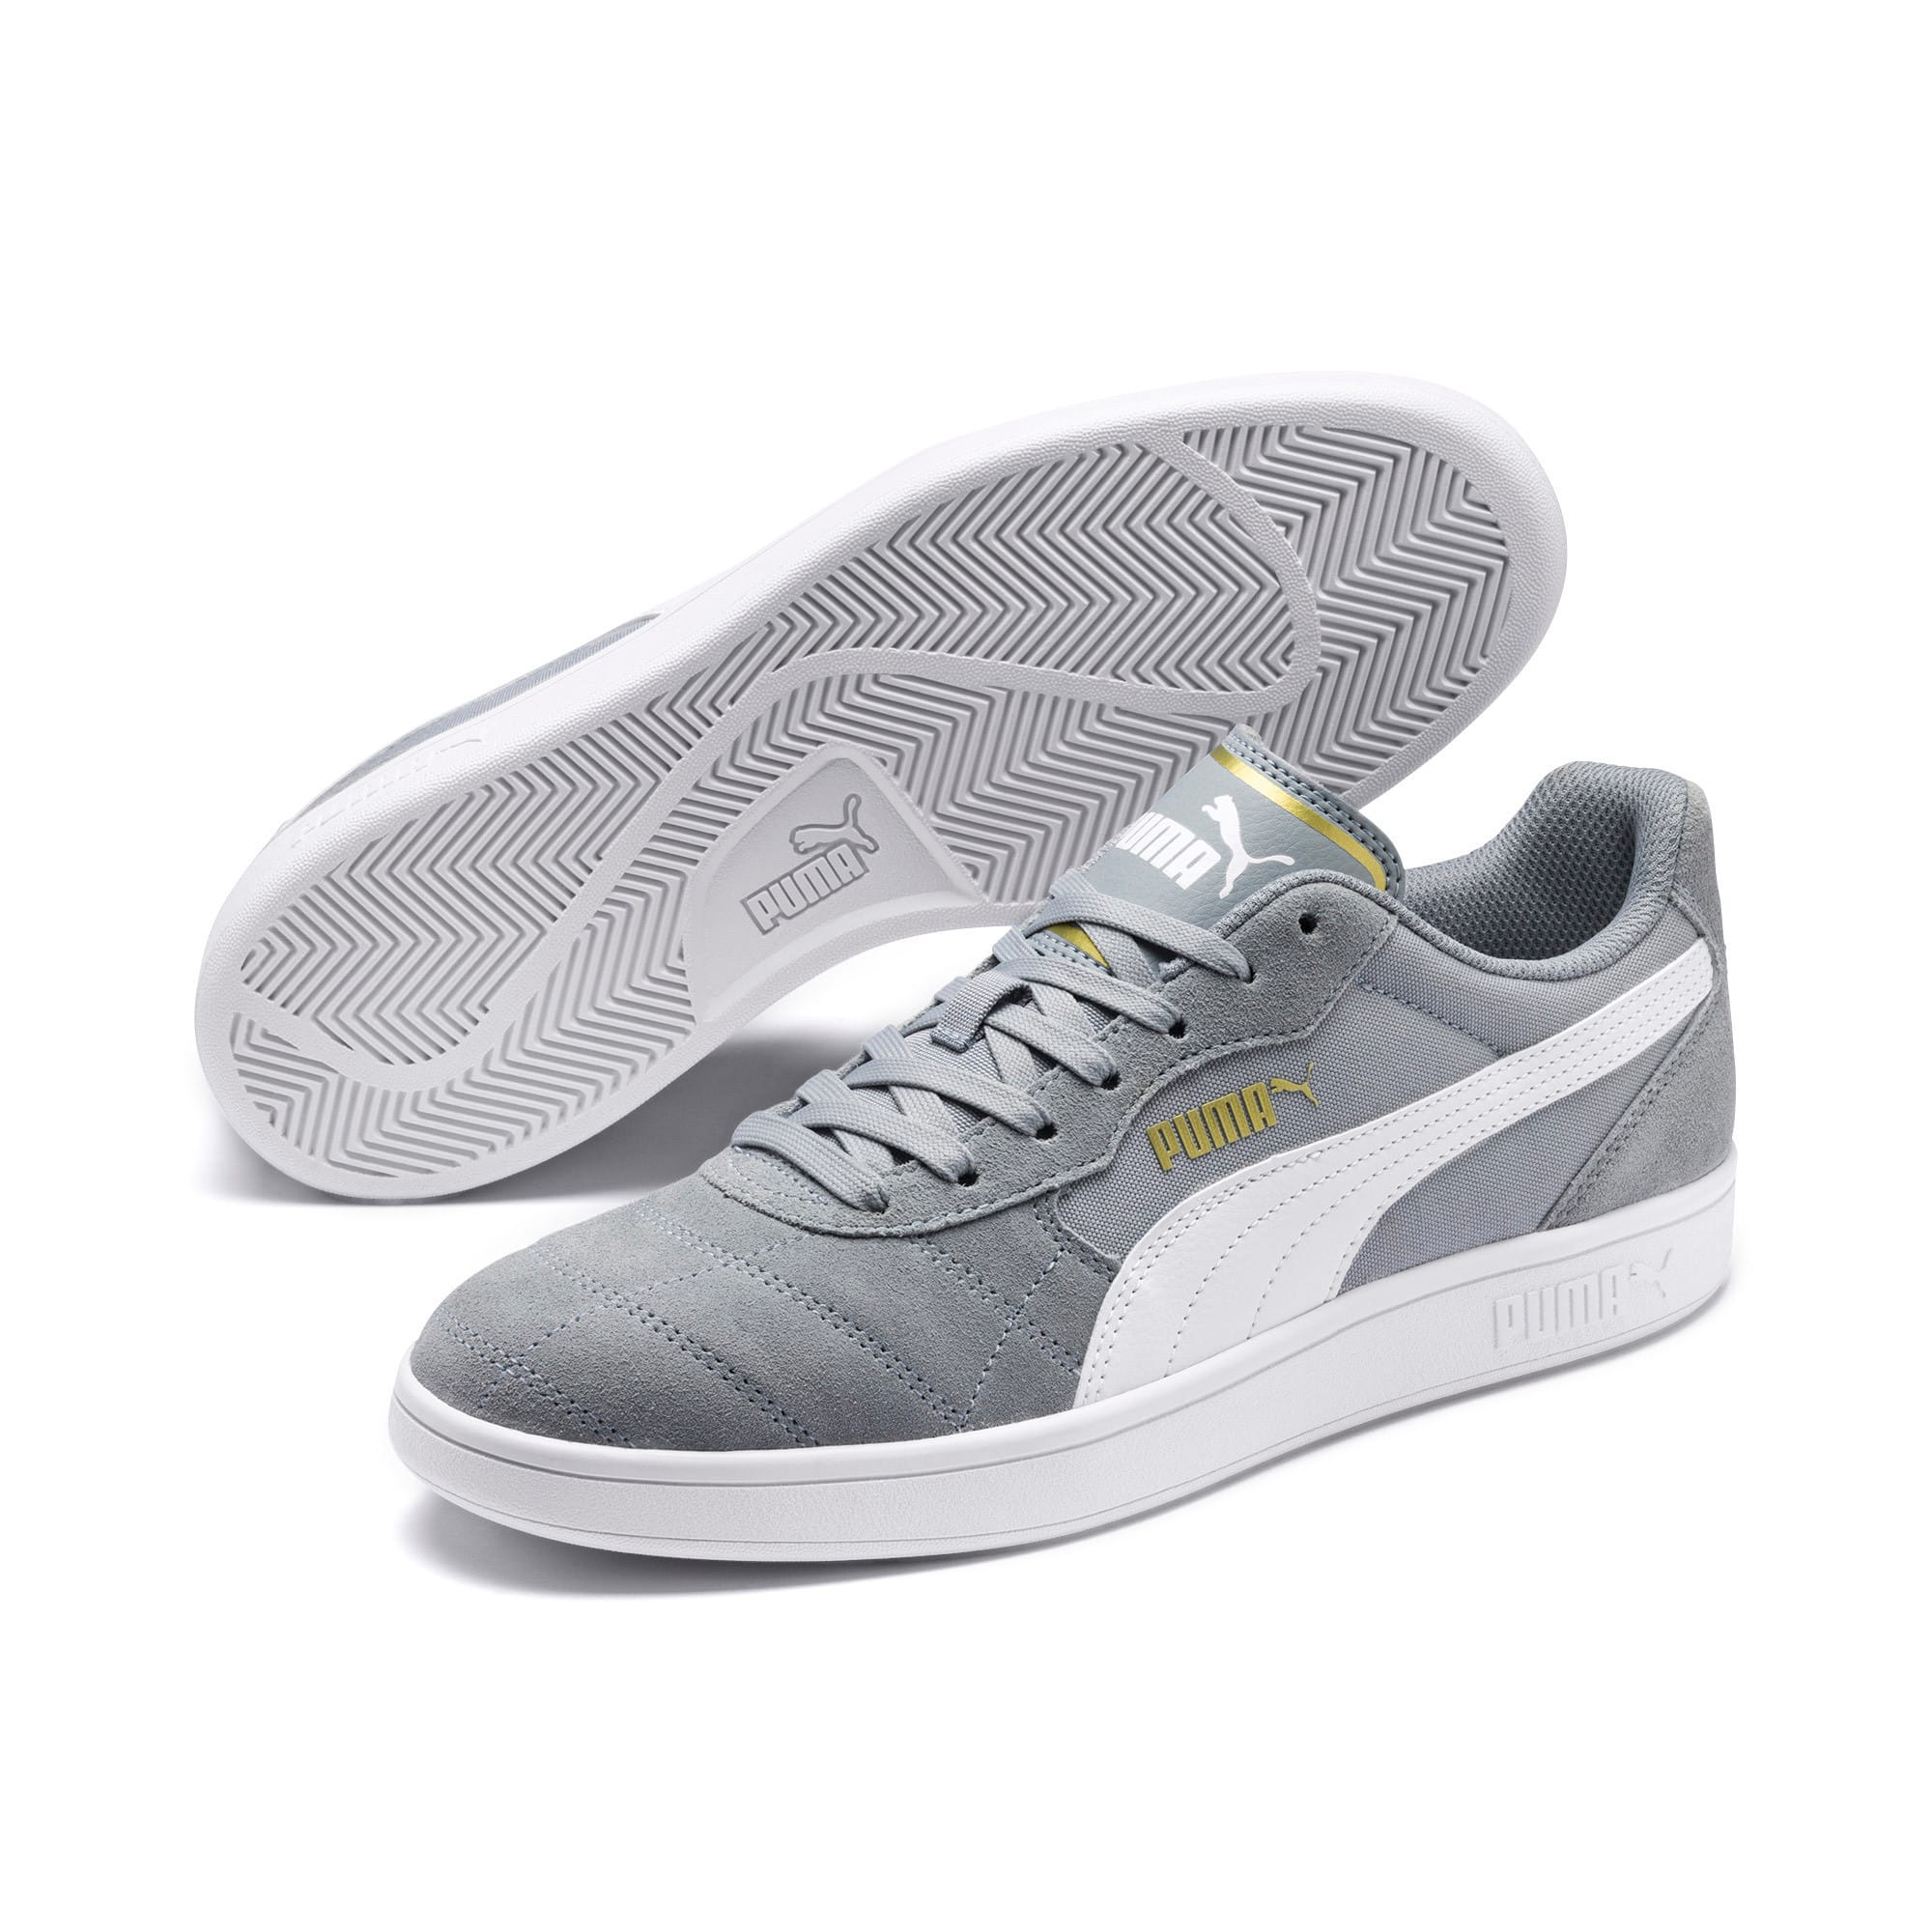 Thumbnail 2 of Astro Kick Sneakers, High Rise-Puma White-Gold, medium